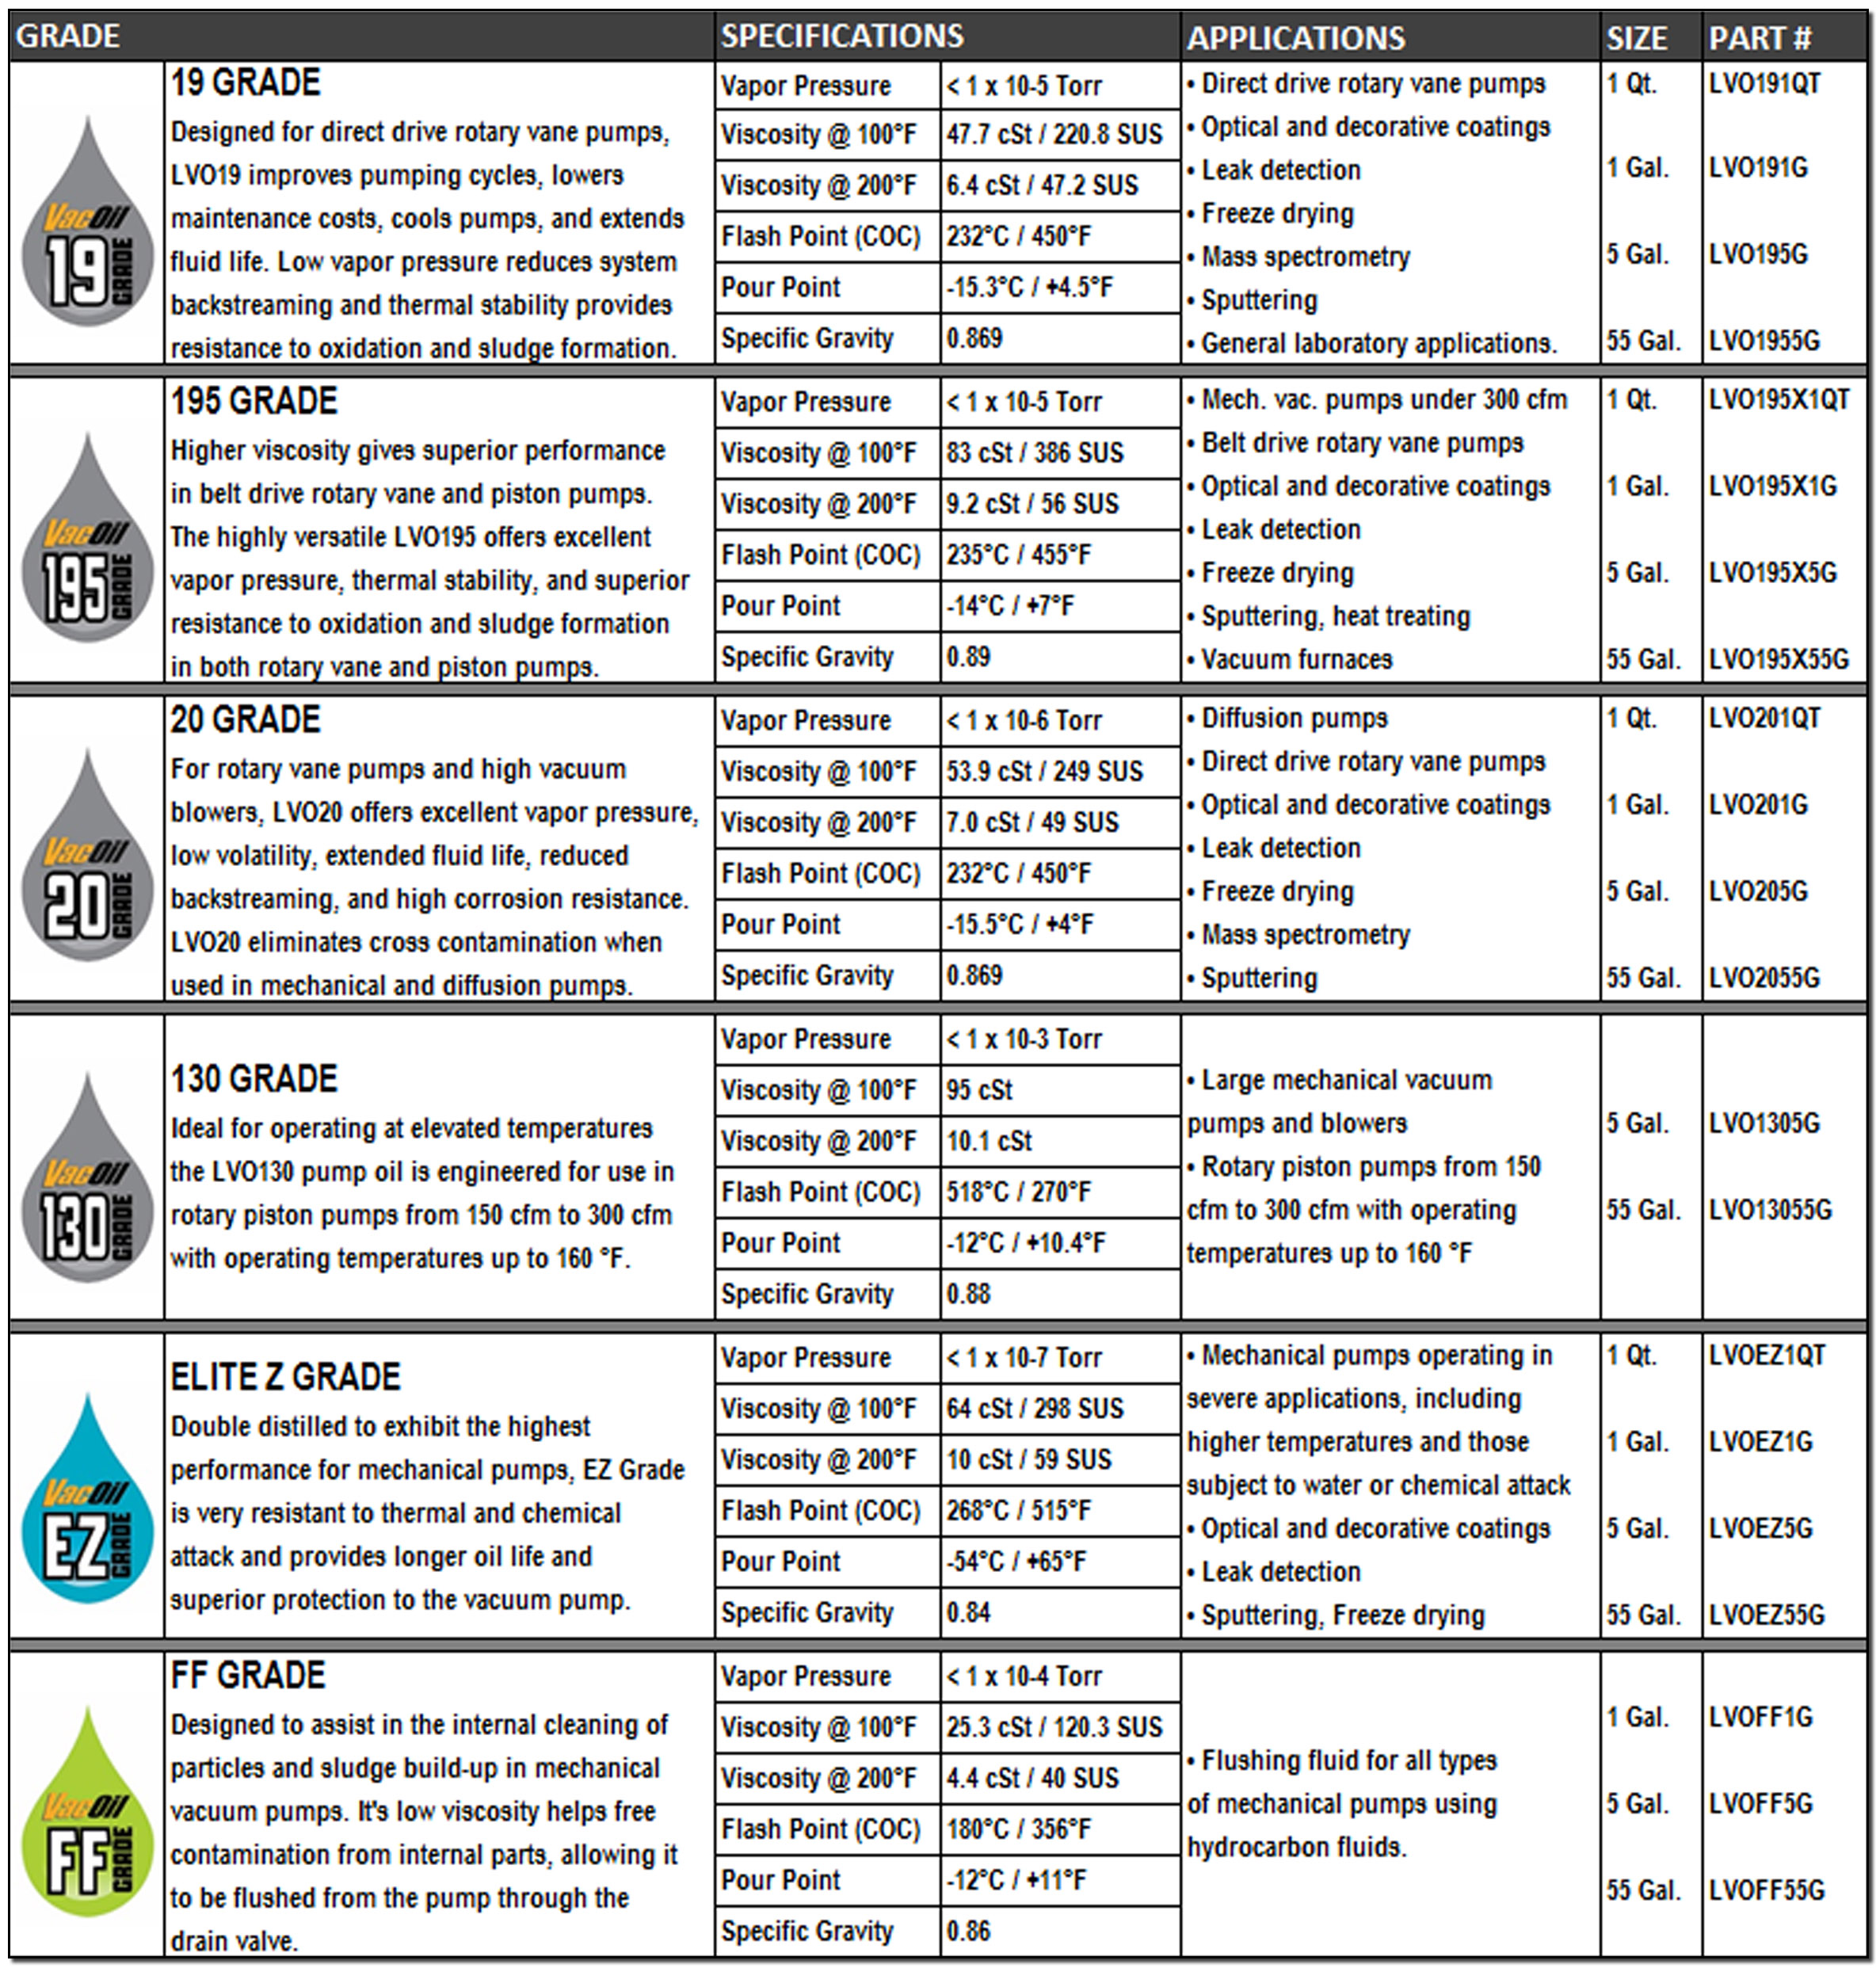 vacoil-specification-chart.jpg